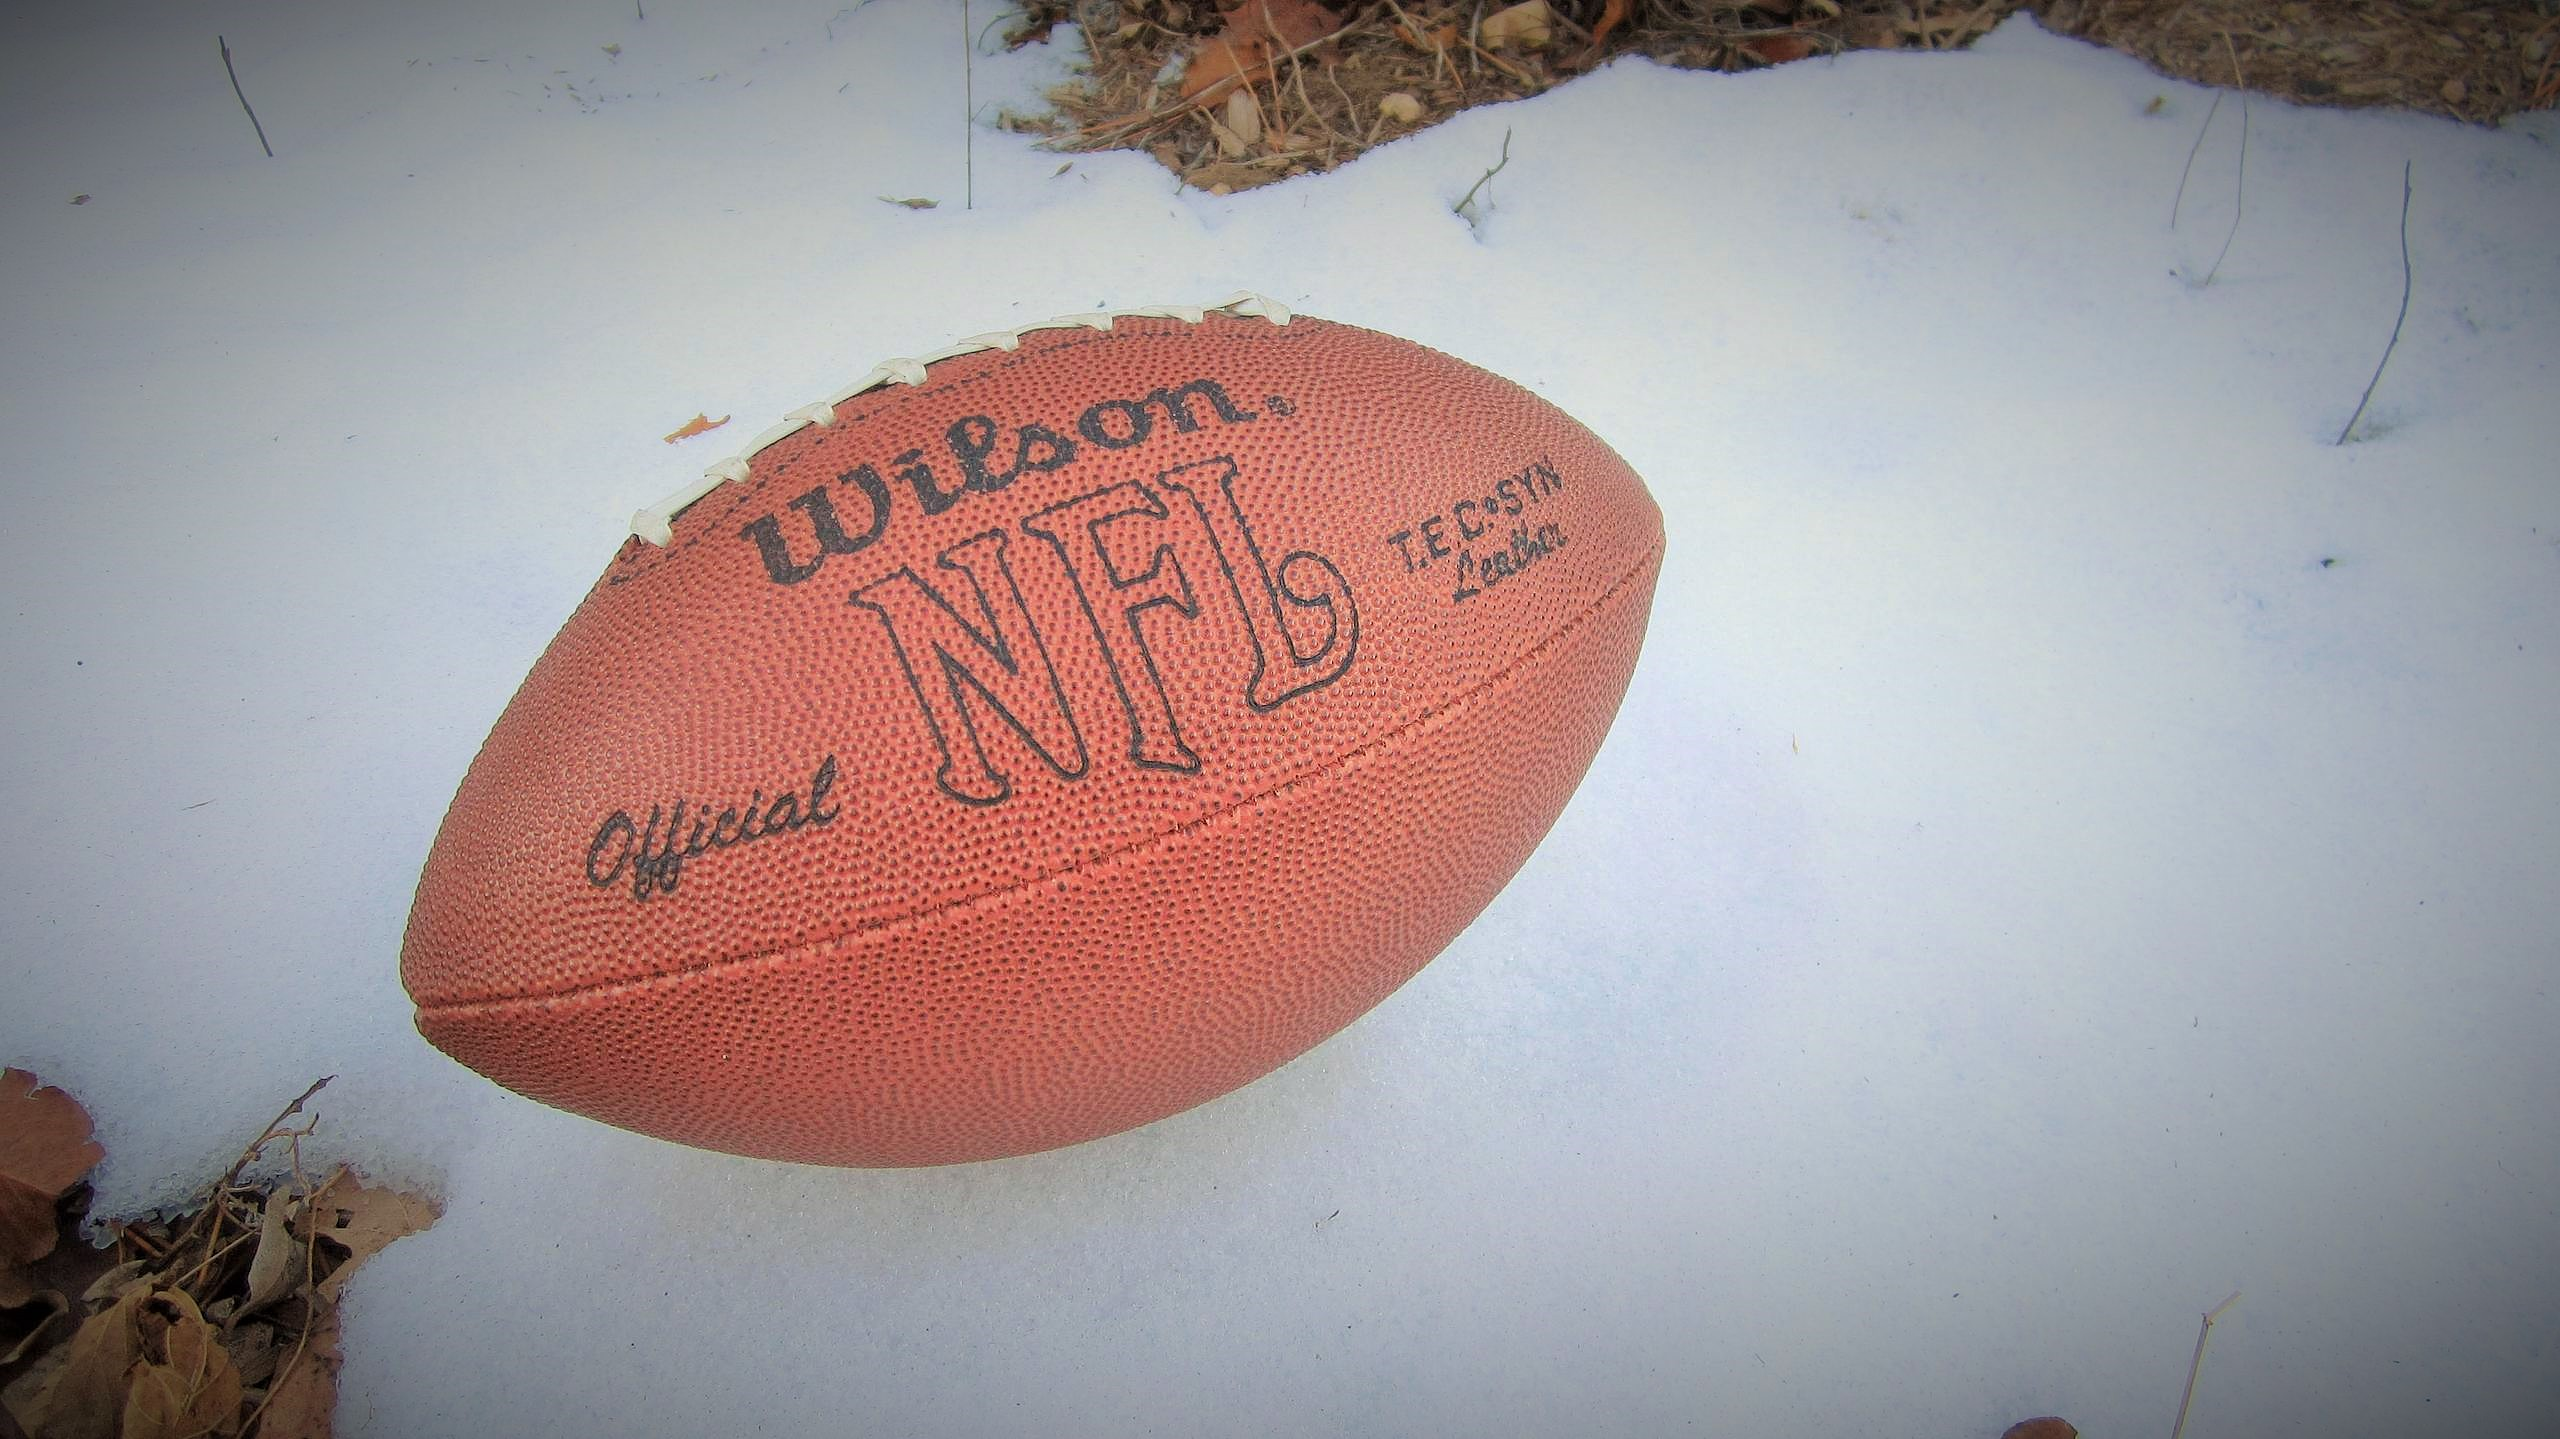 A football in snow.